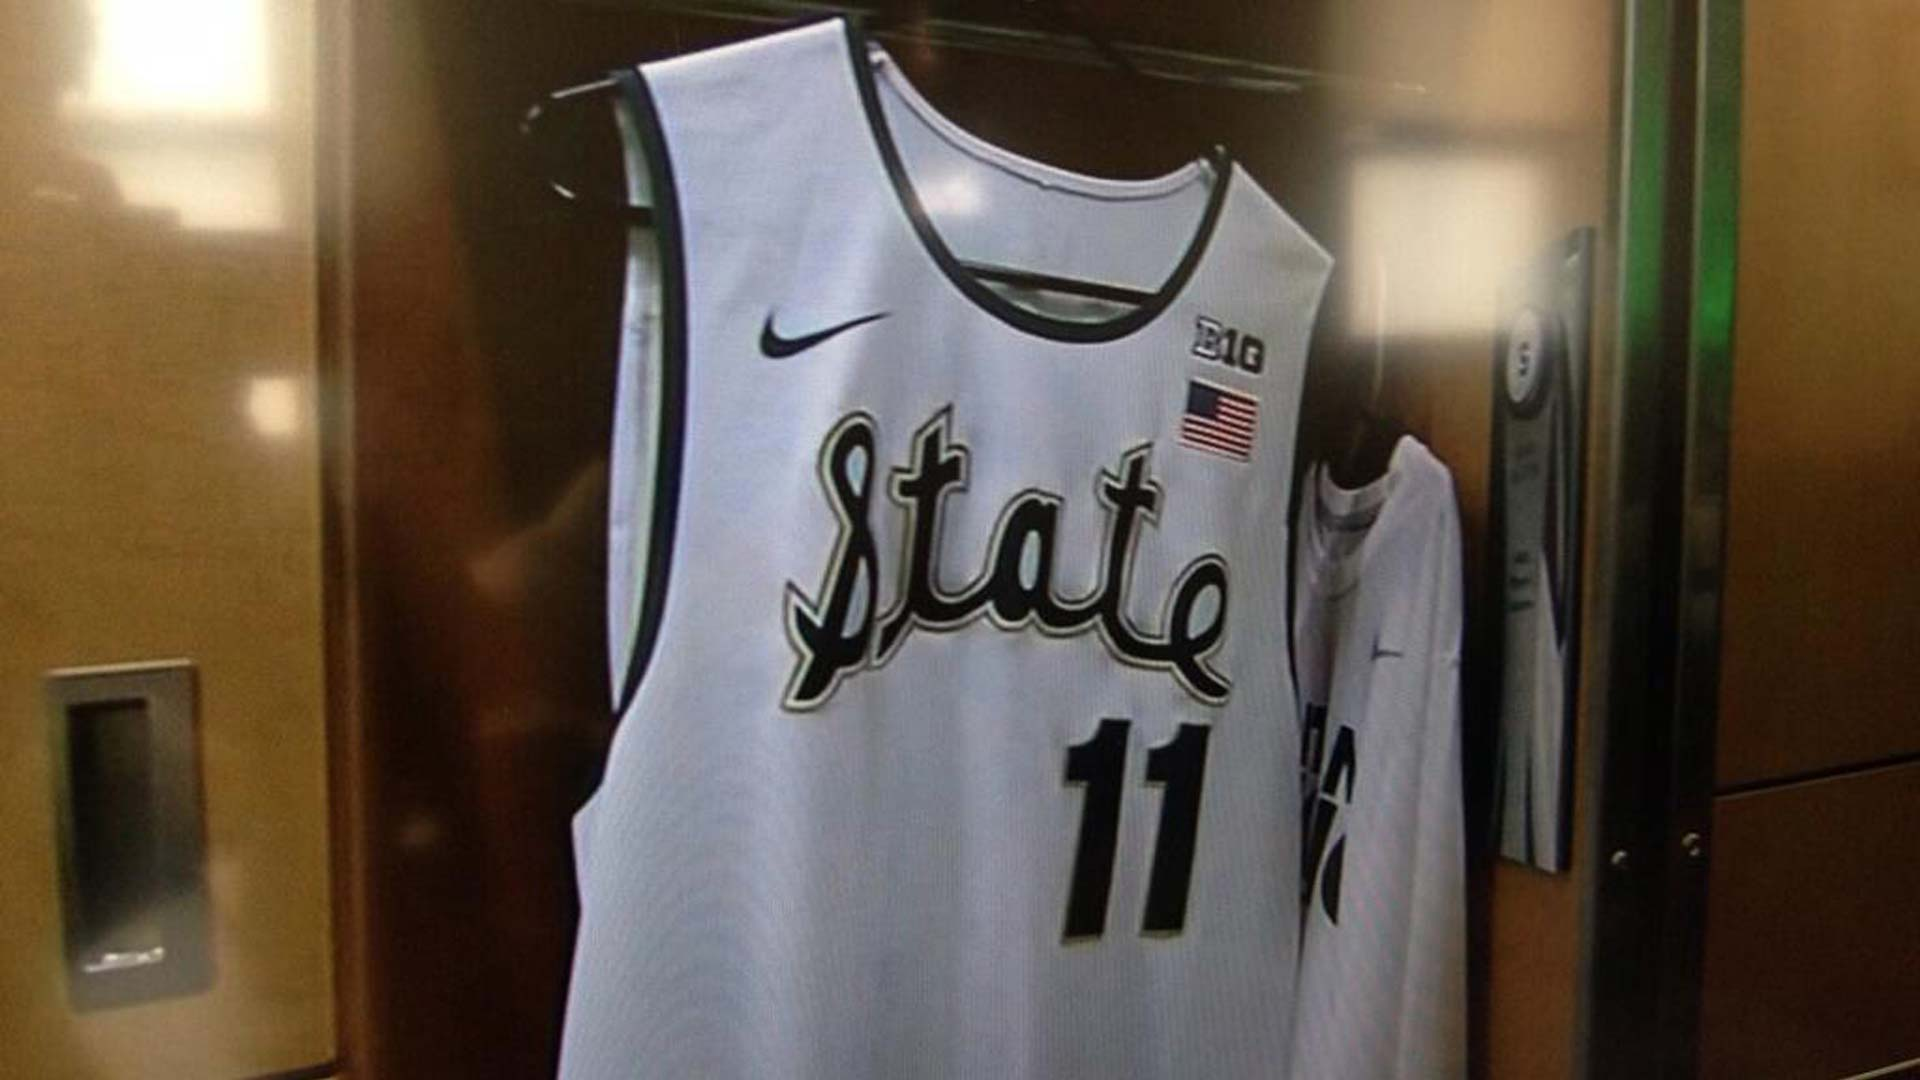 Michigan State to wear 1979 throwback jerseys for Michigan